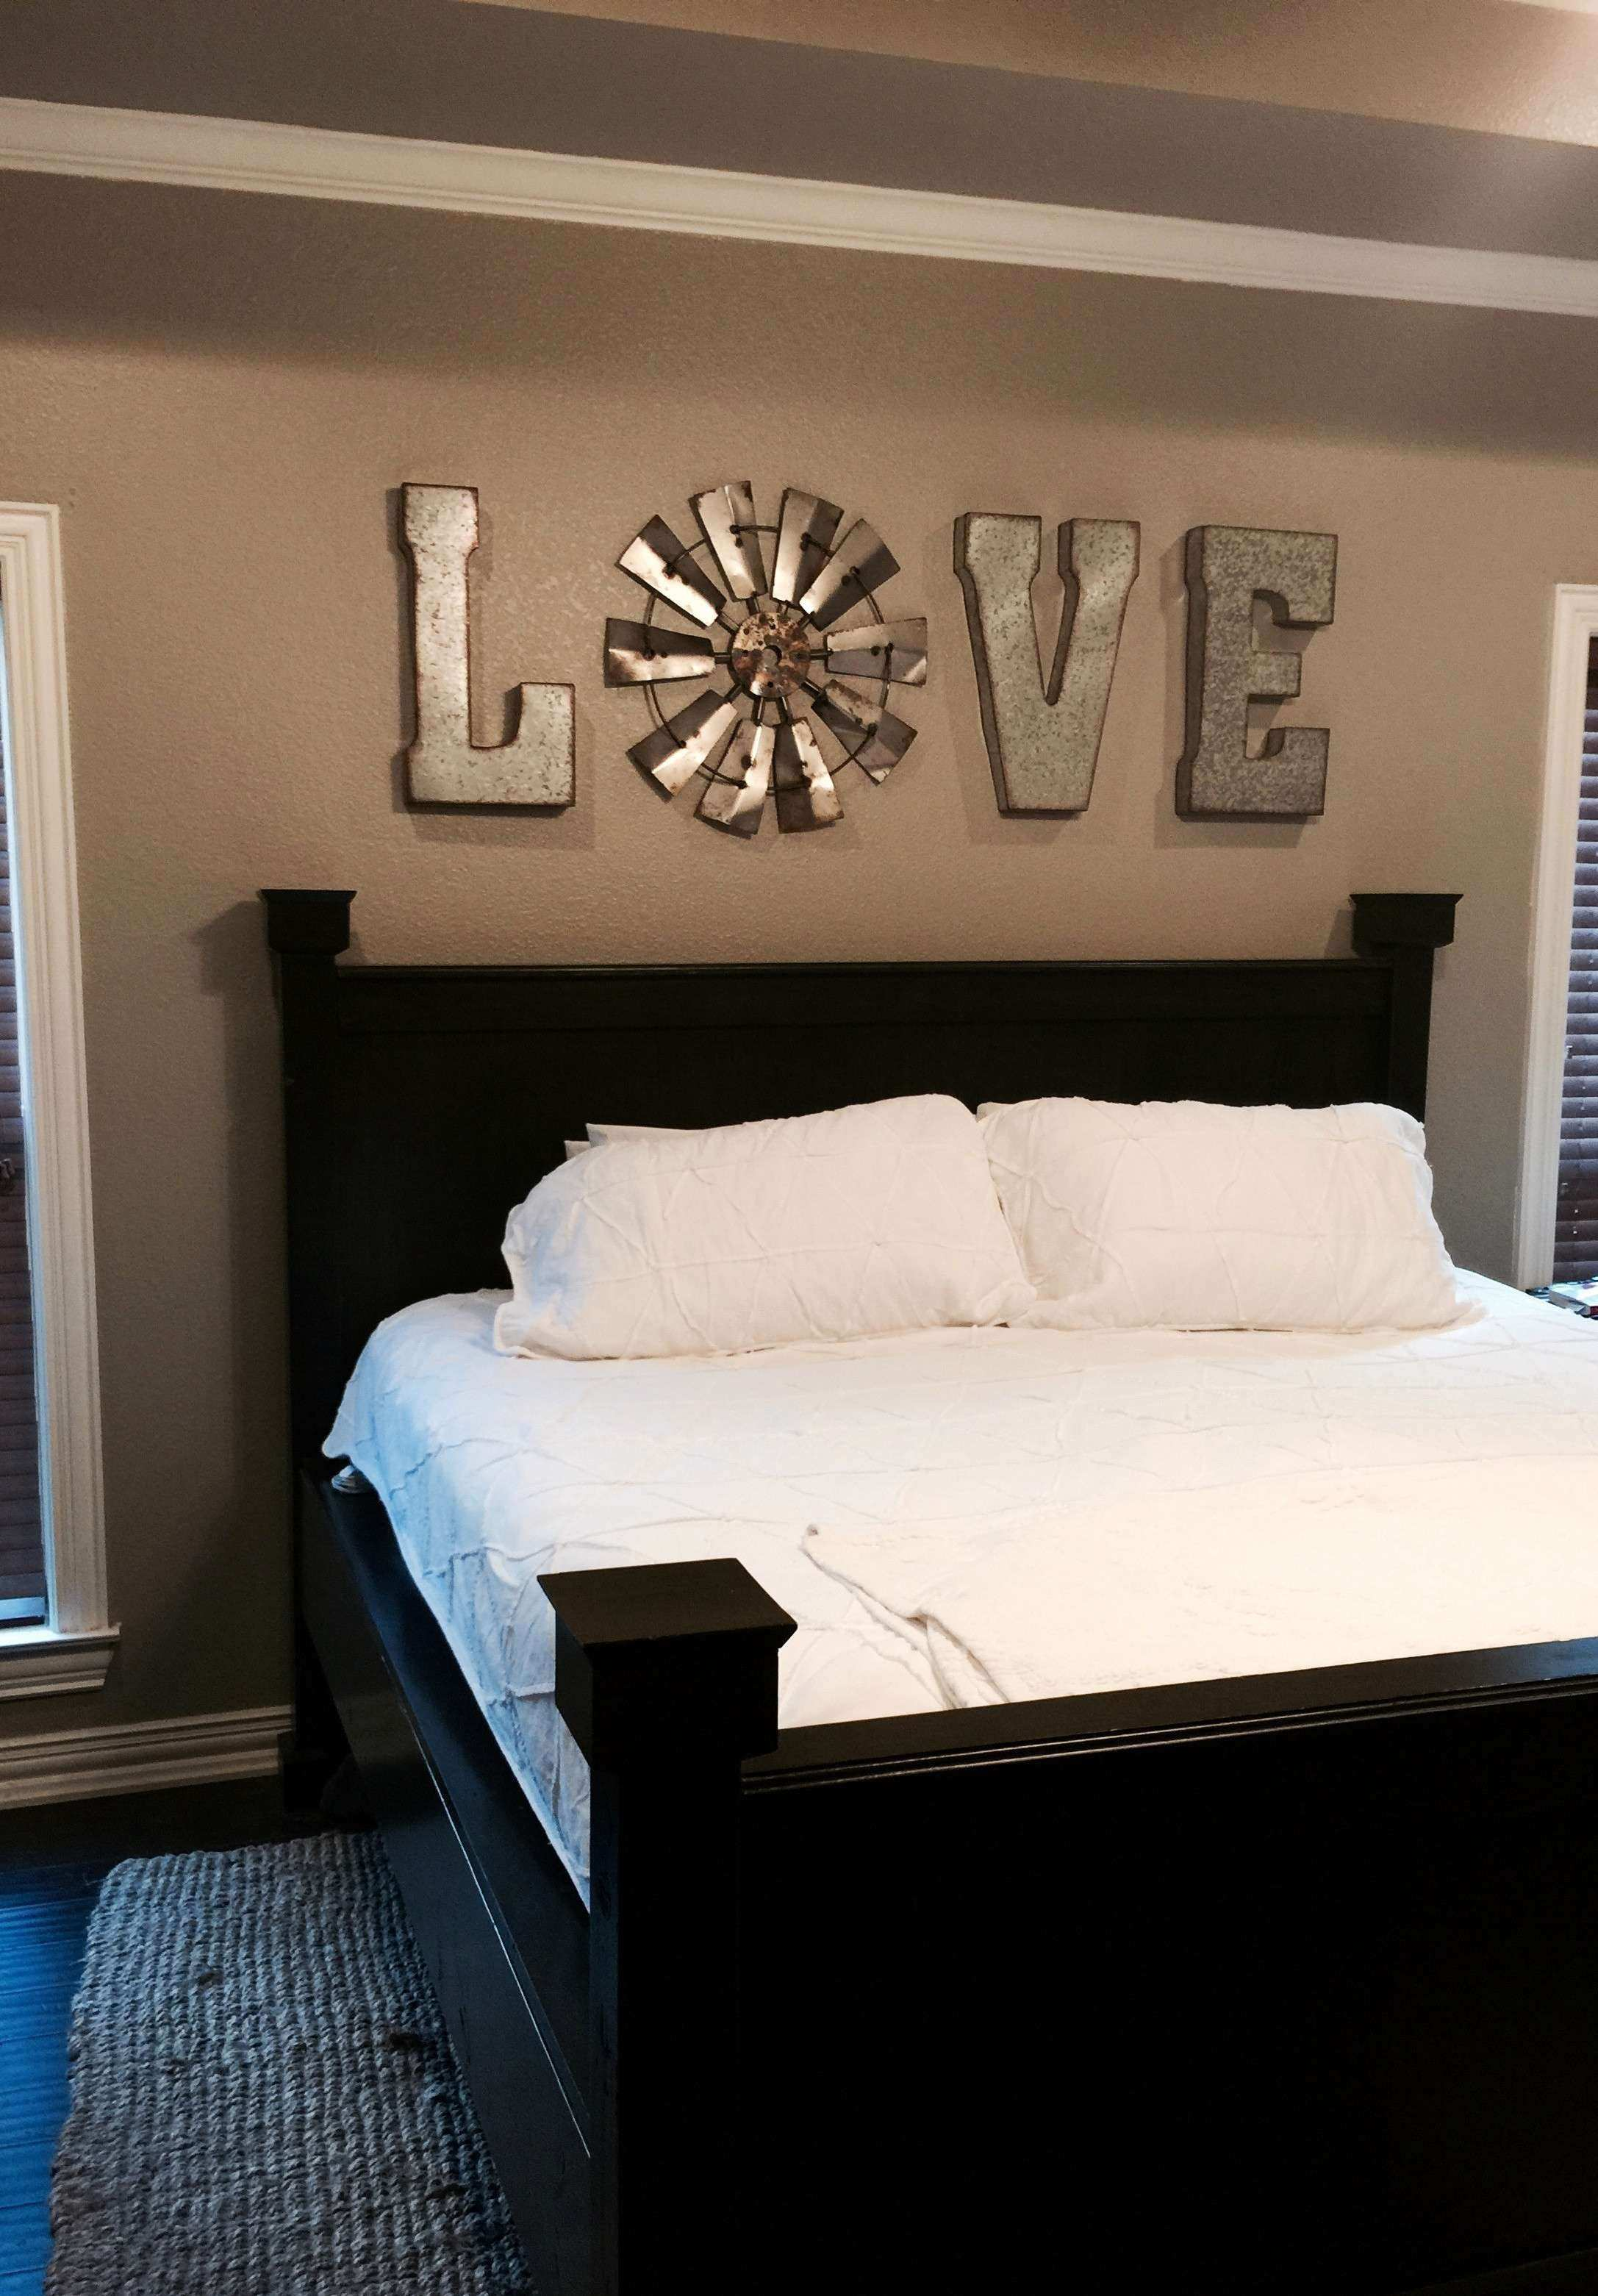 Bedroom Wall Art Stickers Best Ideas for Bedroom Wall Decor